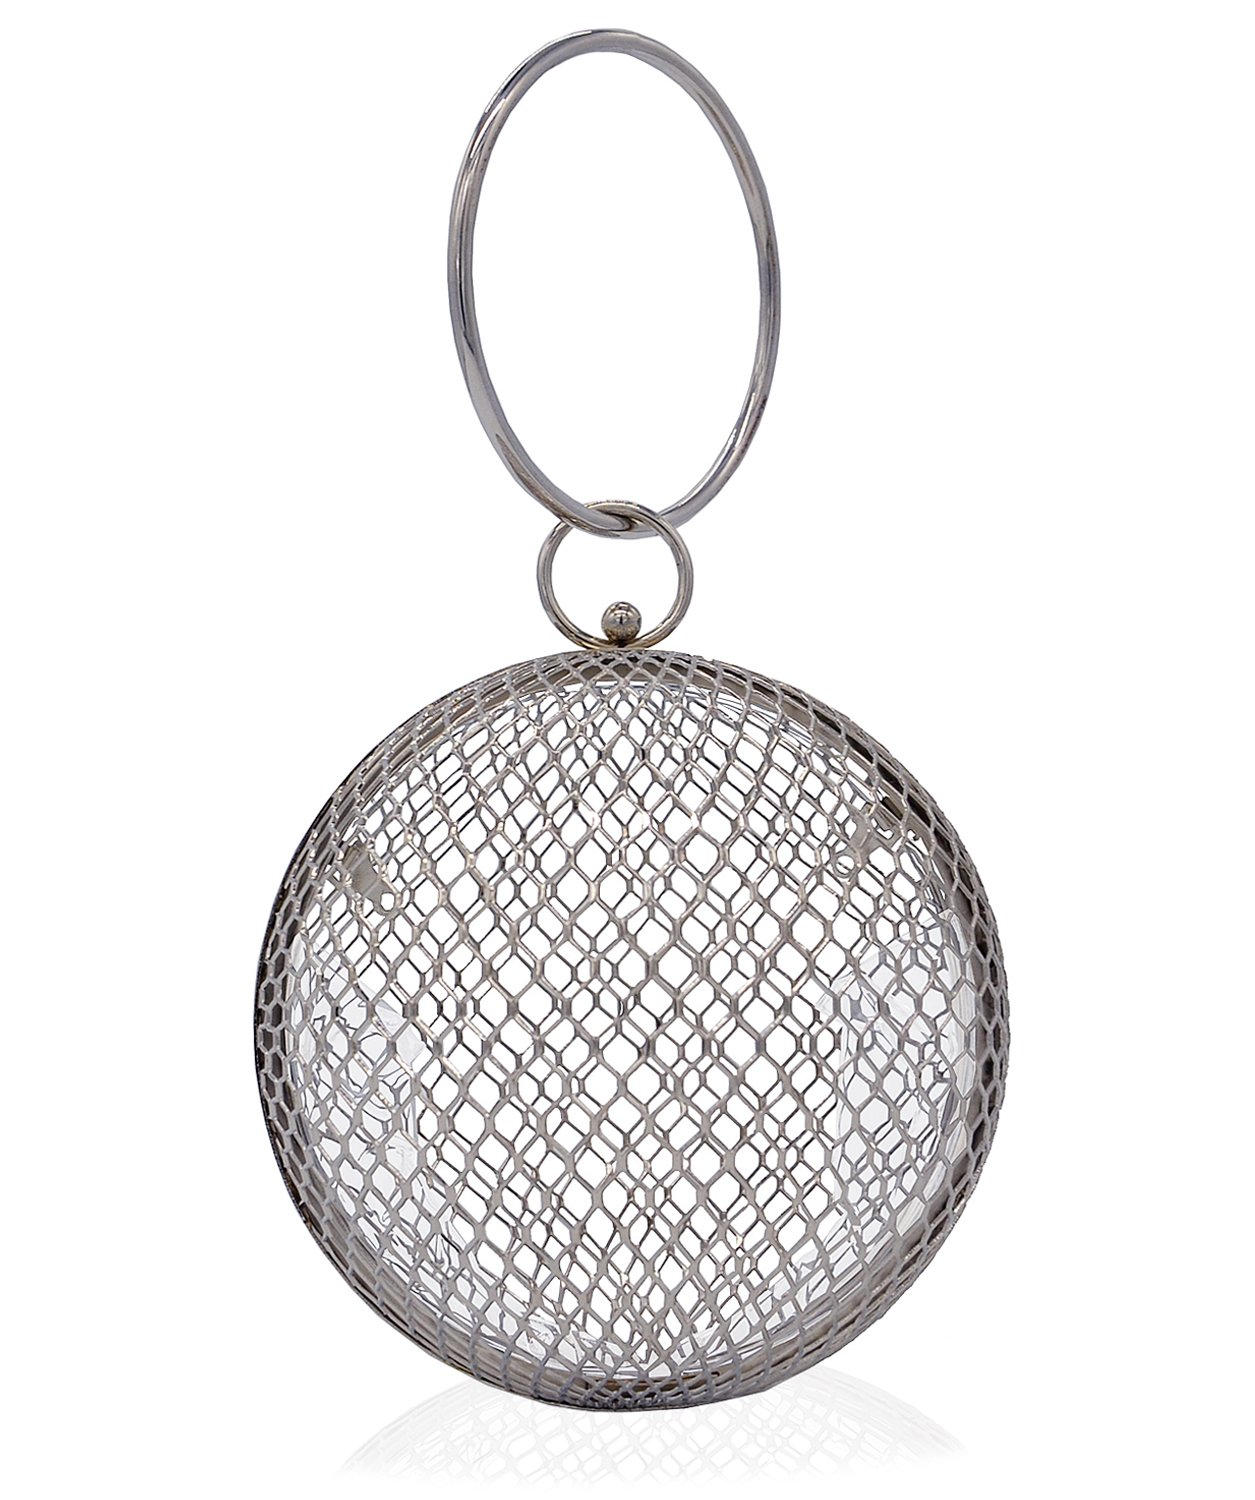 Miuco Women Chain Crossbody Bags Hollow Out Cage Metal Round Clutch Silver